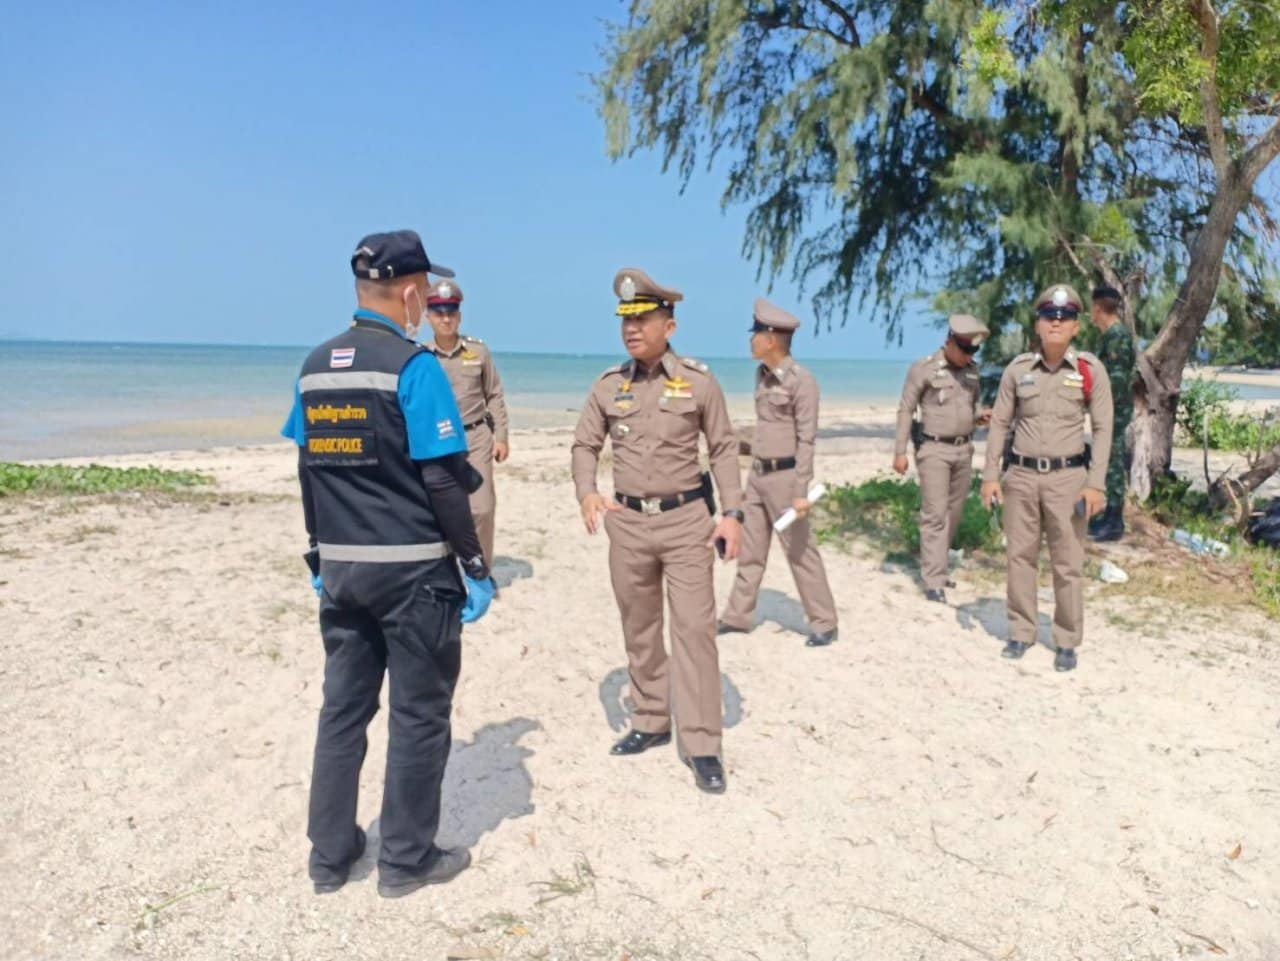 Hunt for man who raped Norwegian tourist on Koh Pha-ngan. Police on Koh Phangan have launched a manhunt for a man who allegedly raped a Norwegian